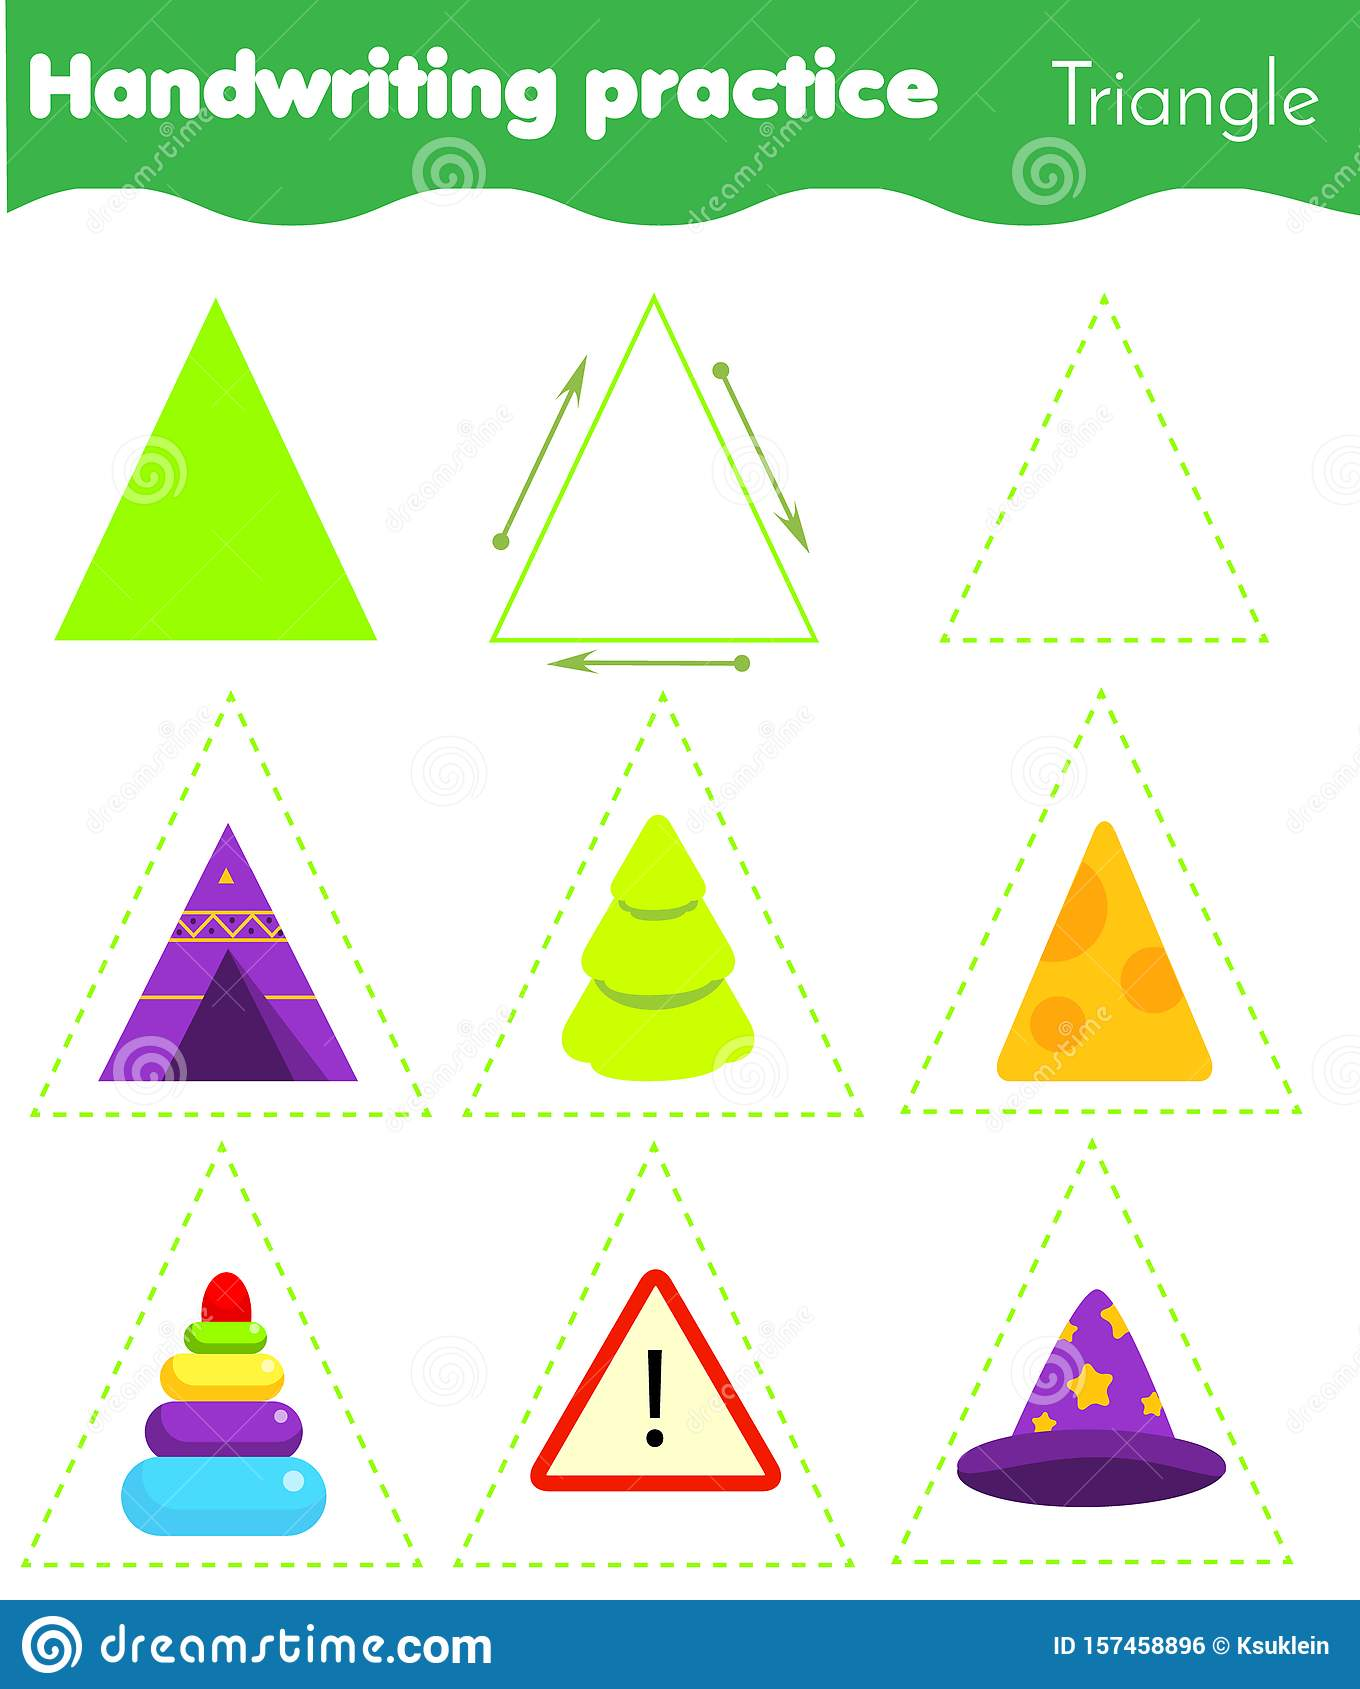 Triangle Form Objects Handwriting Practice Geometric